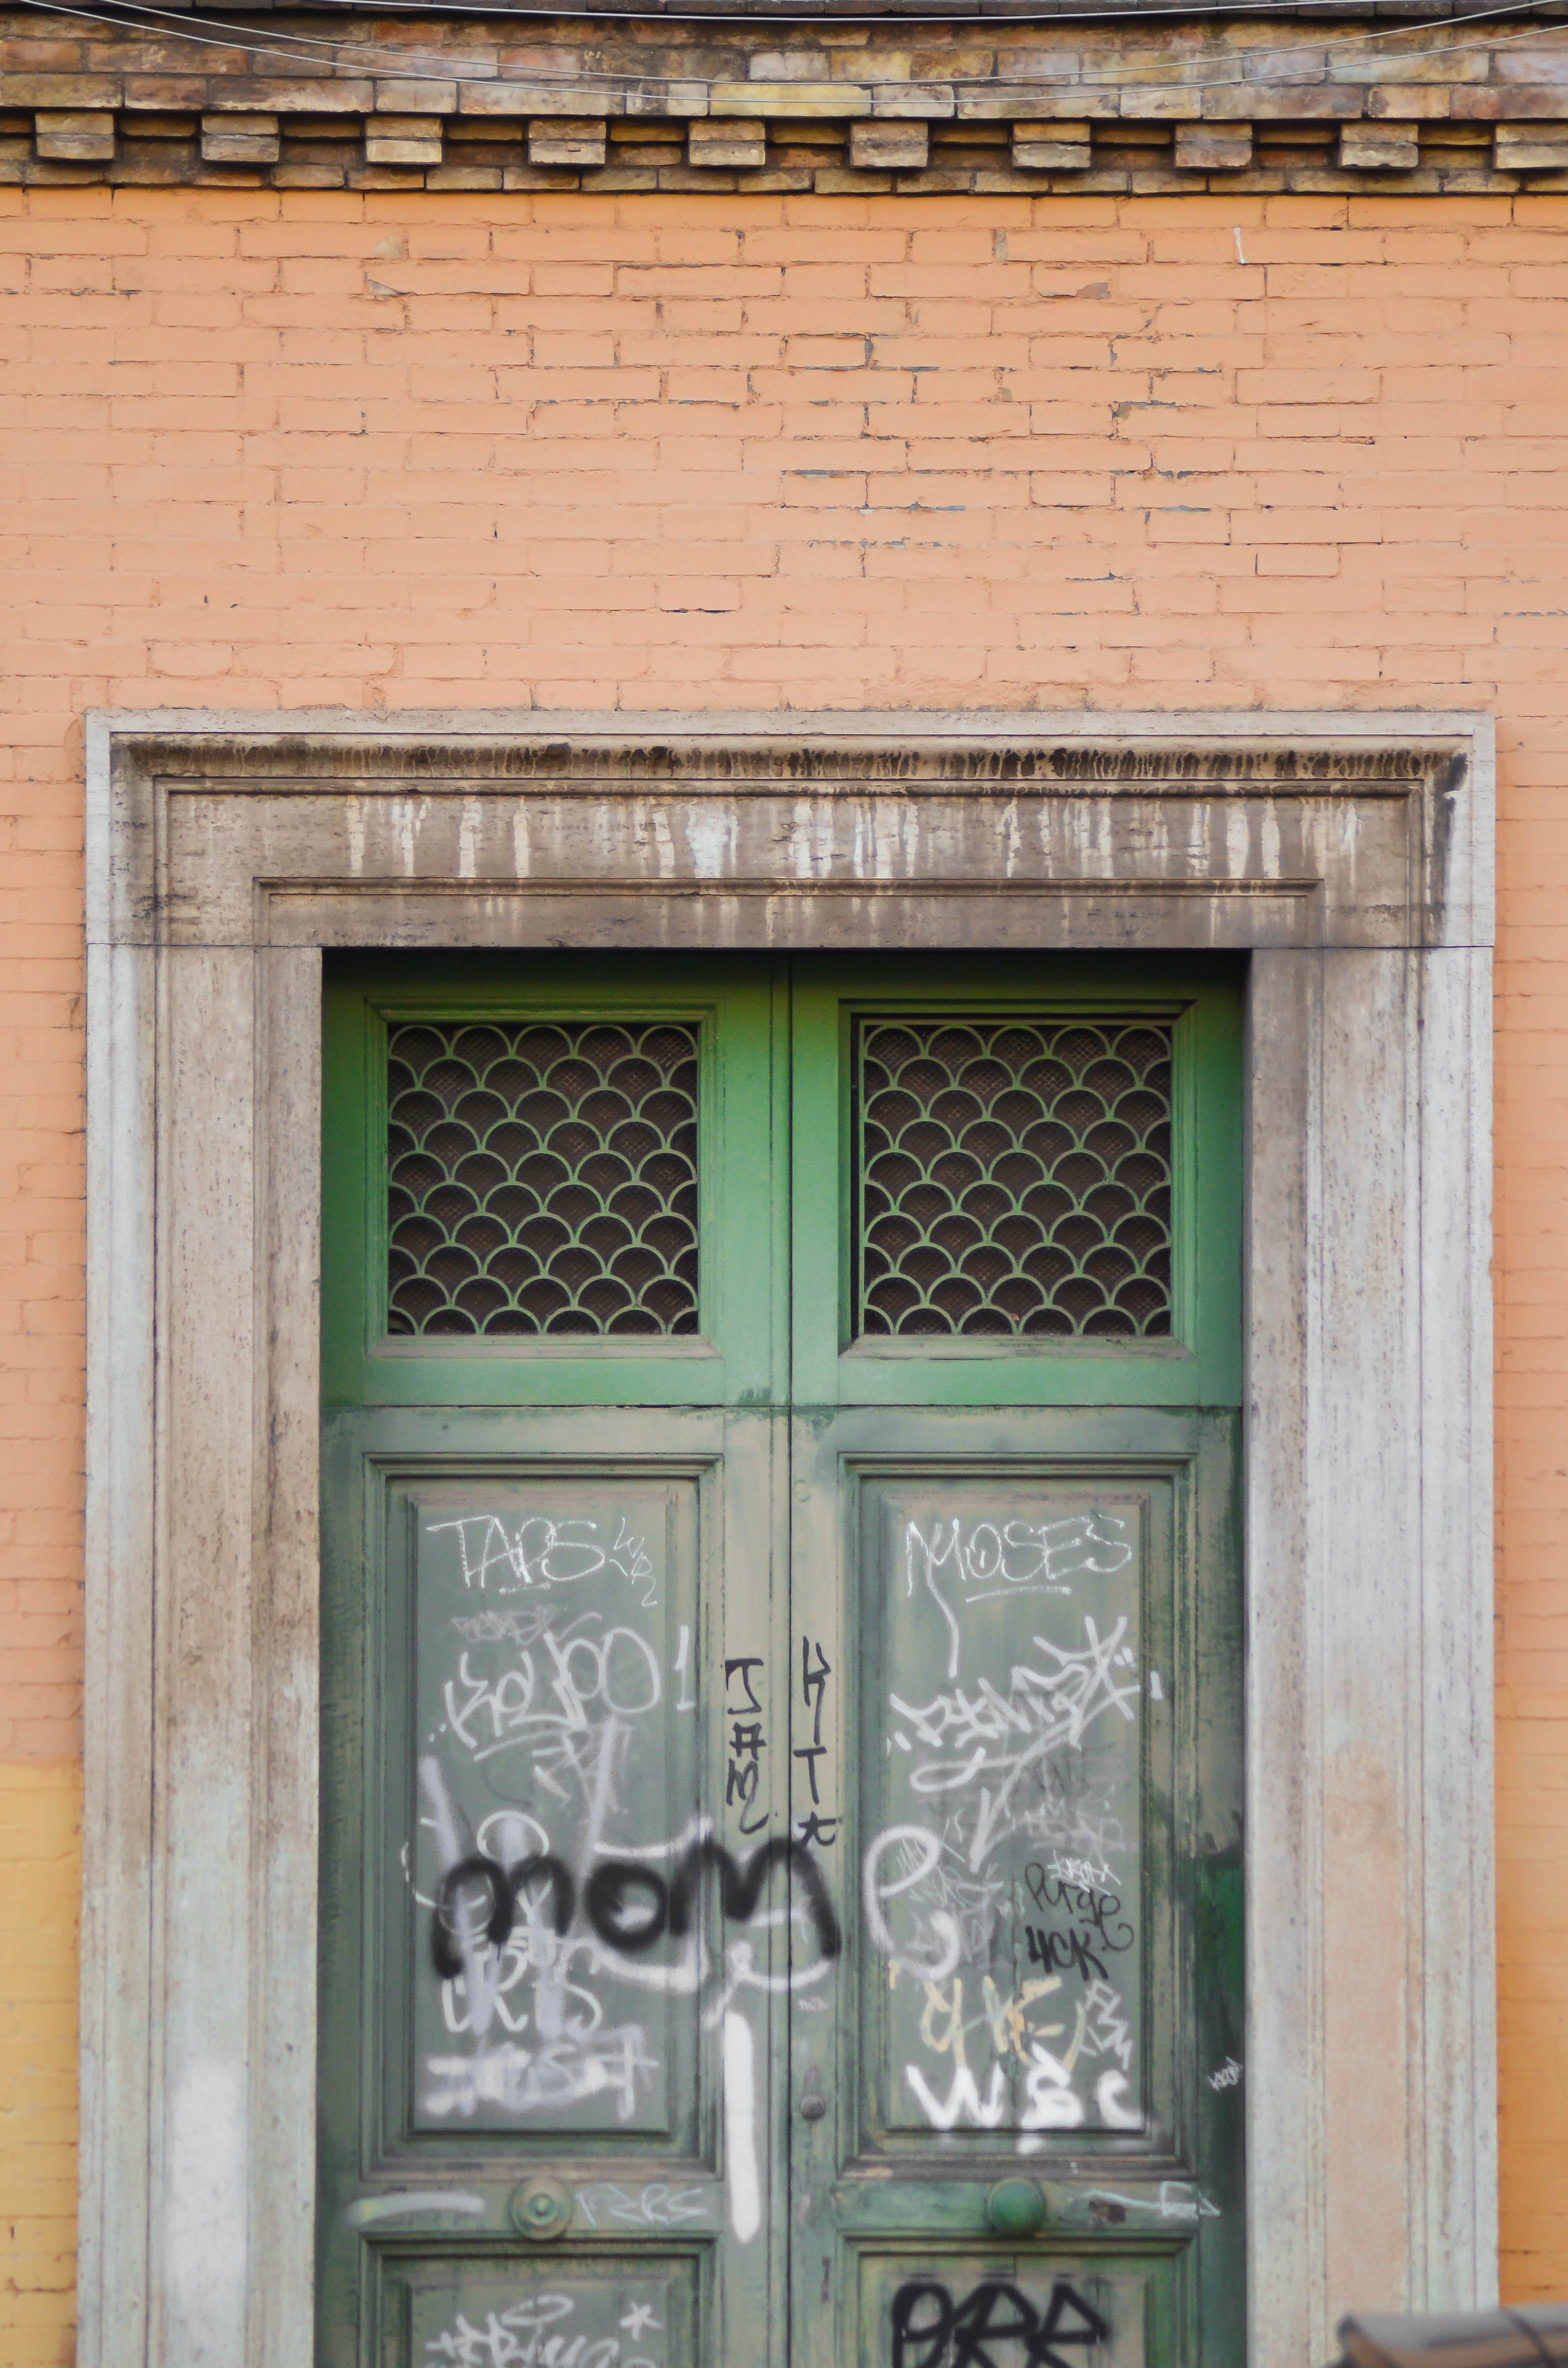 Free stock photo of buildings, destroyed, door, graffiti